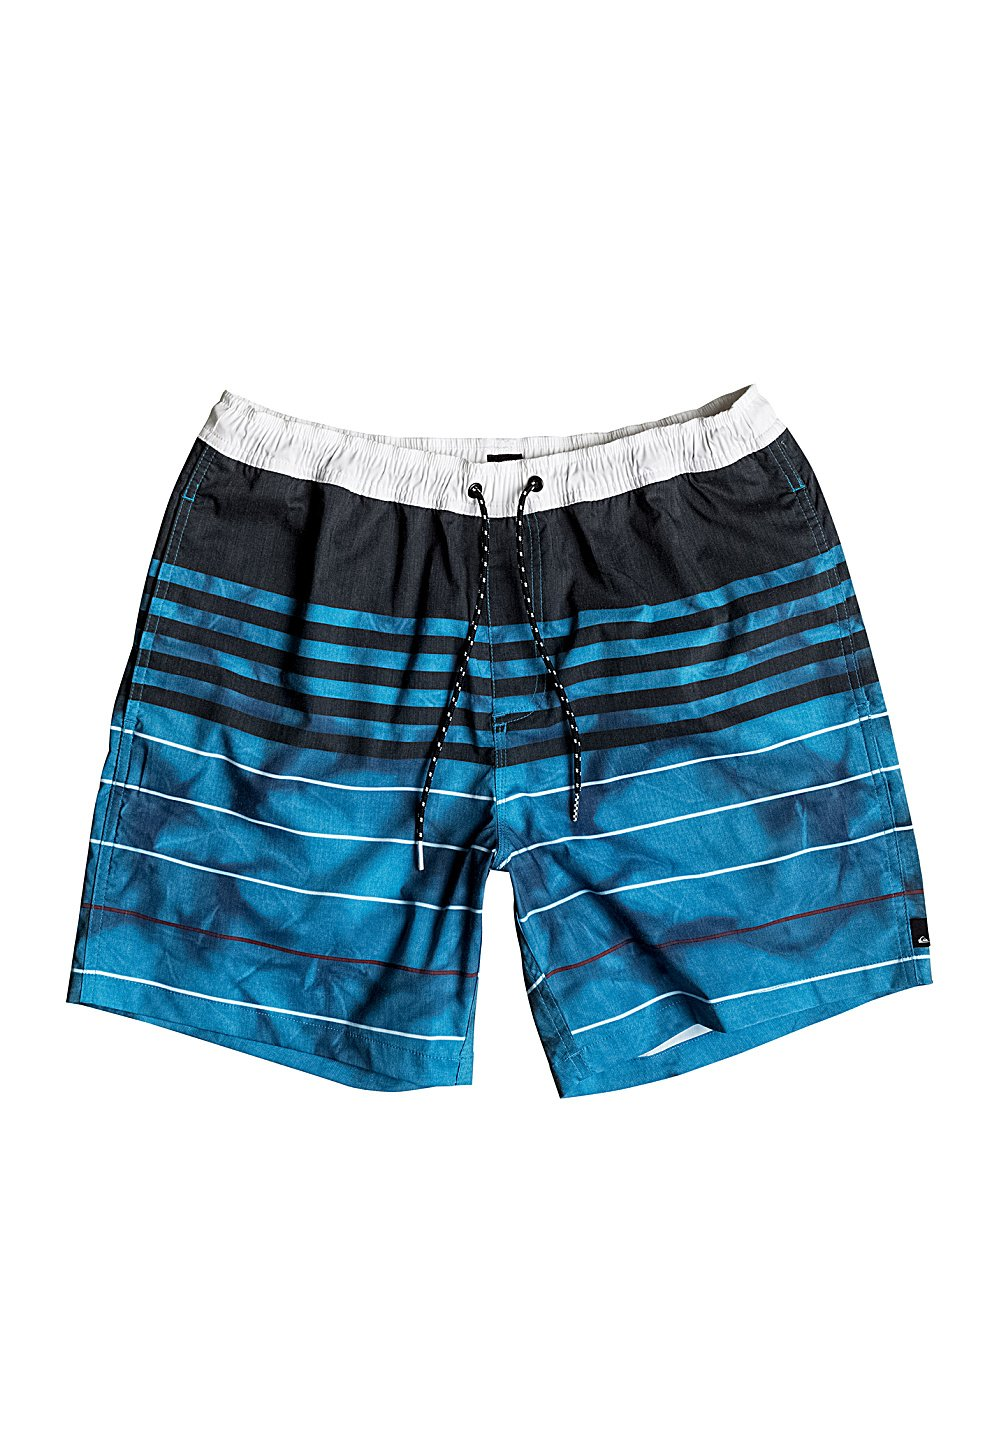 Herren Boardshorts Quiksilver Swell Vision Volley 17 Boardshorts